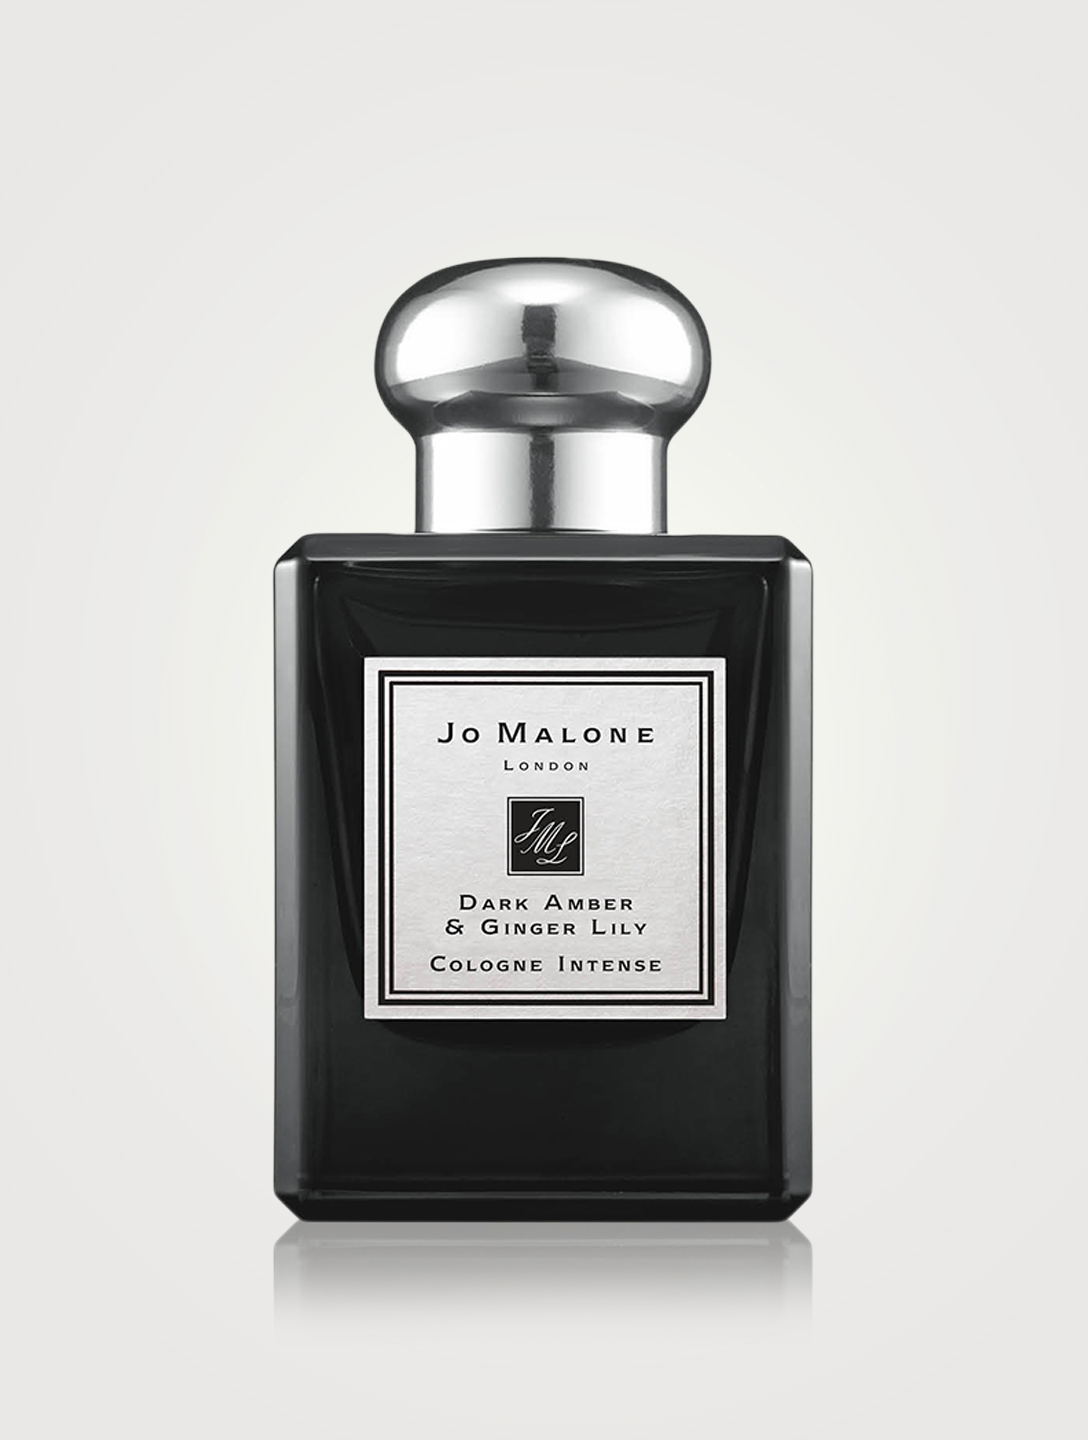 JO MALONE LONDON Dark Amber & Ginger Lily Cologne Intense Beauty